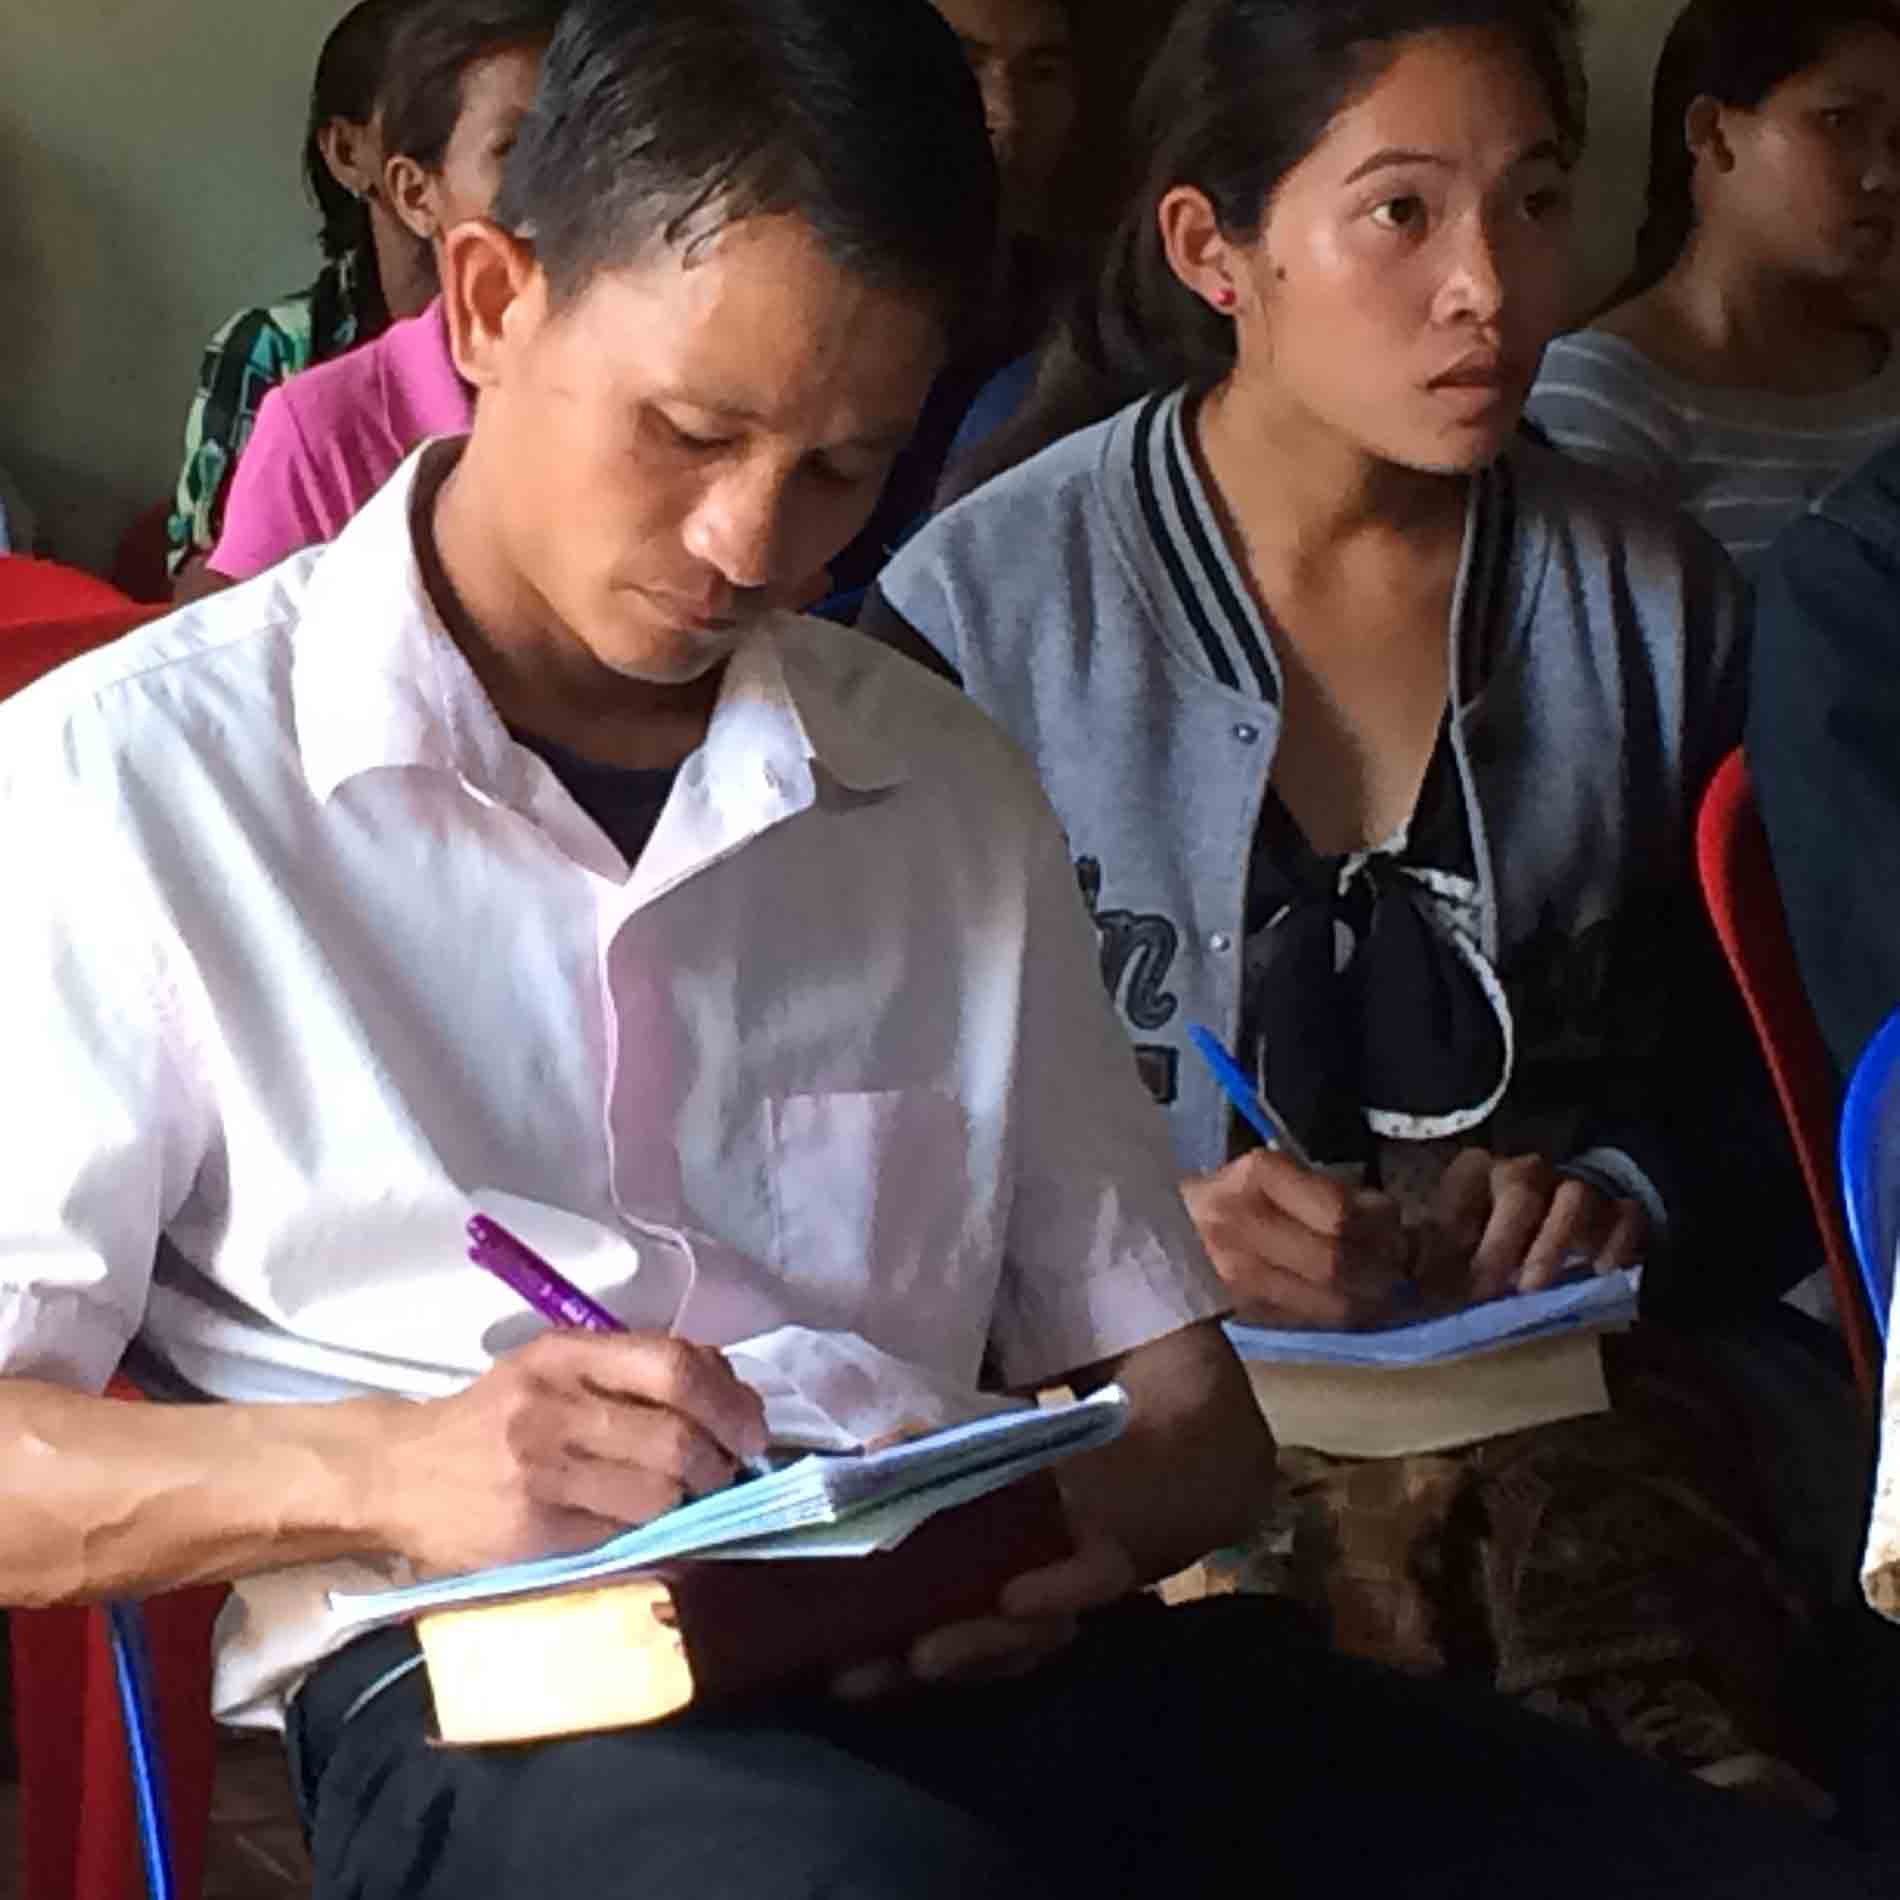 LAOS | MAY. 27, 2020  — Young Couple Become Non-Citizens